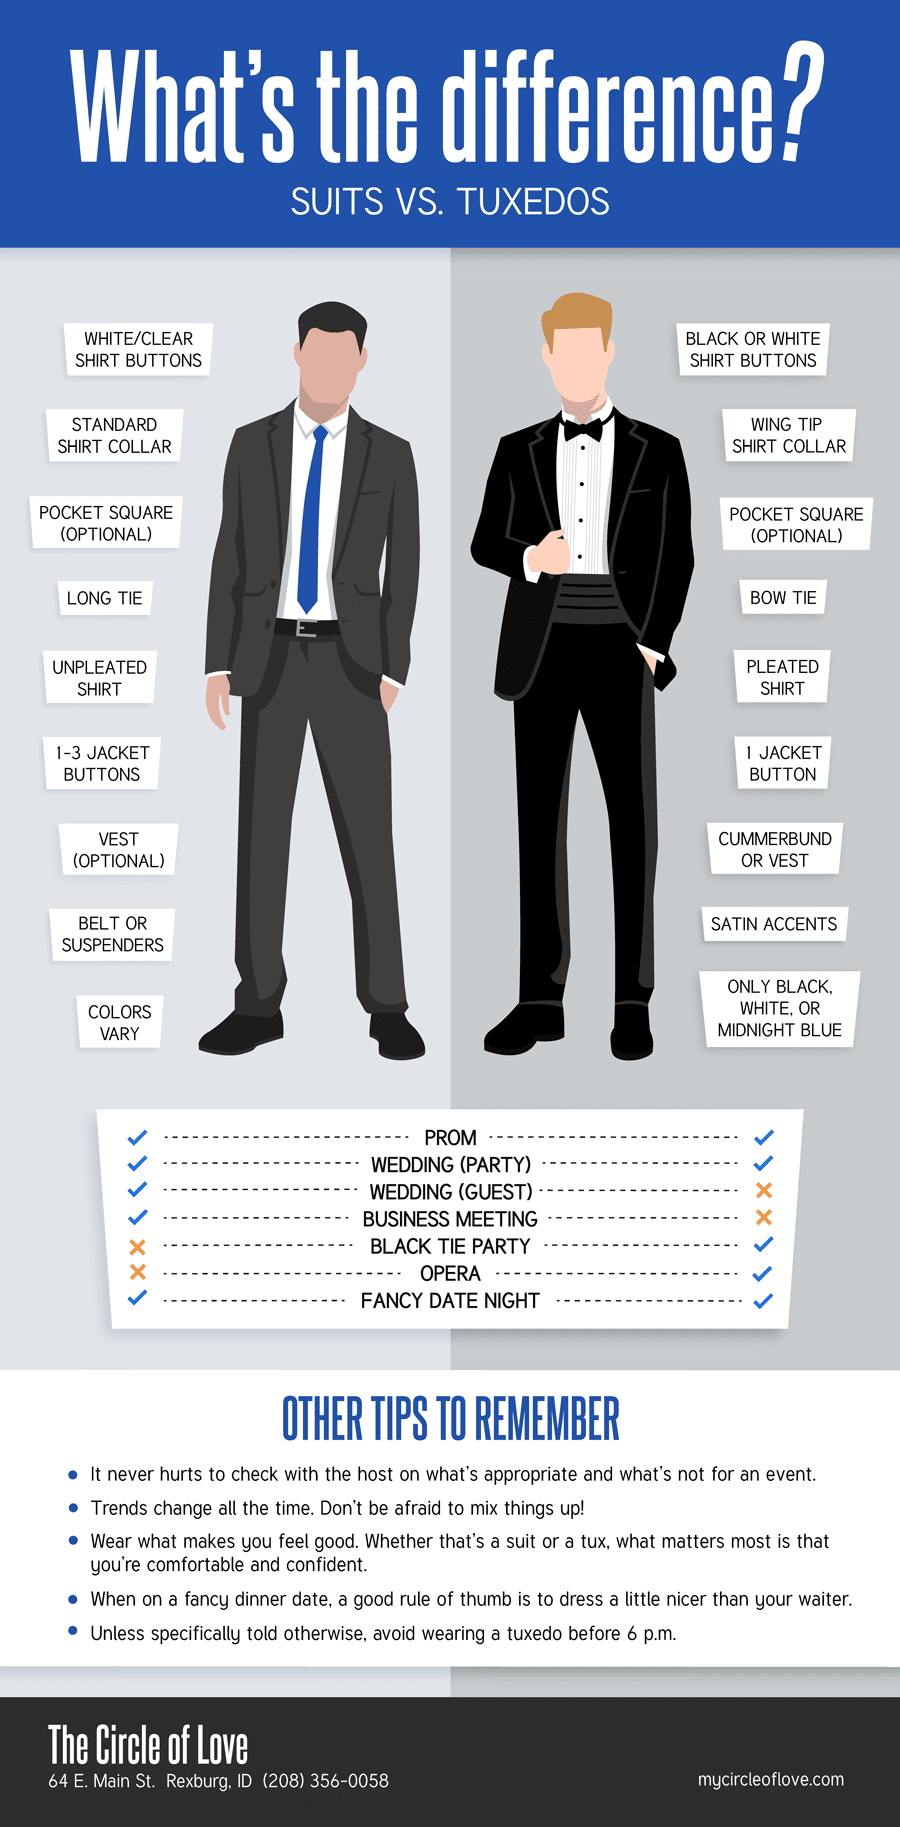 Suits vs Tuxedos